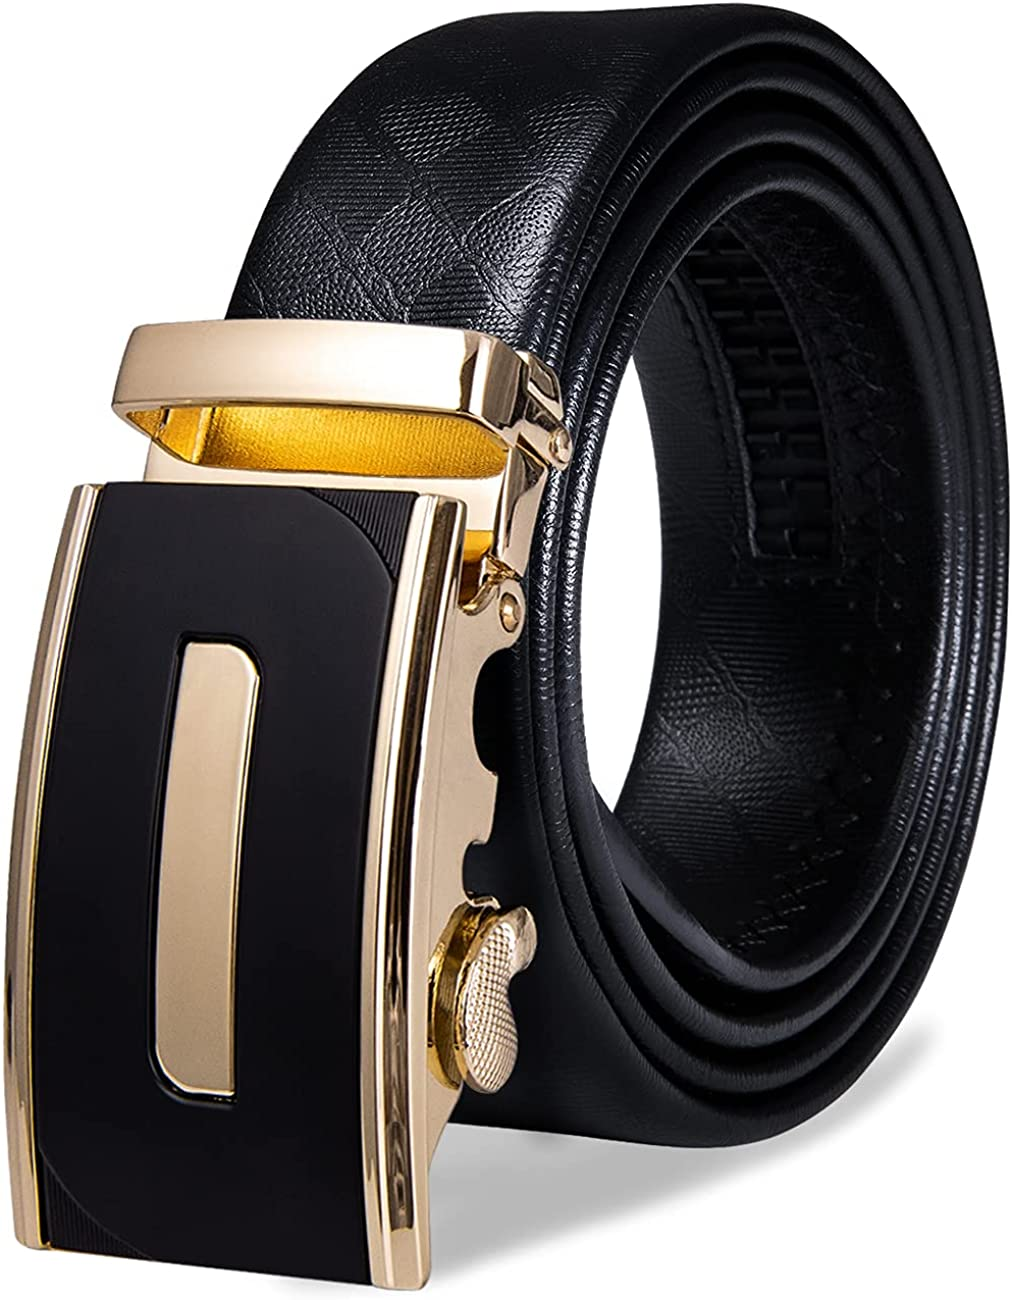 Mens Gold Buckle Belt YOHOWA Today's only Cowhide Price reduction Buck Automatic Ratchet